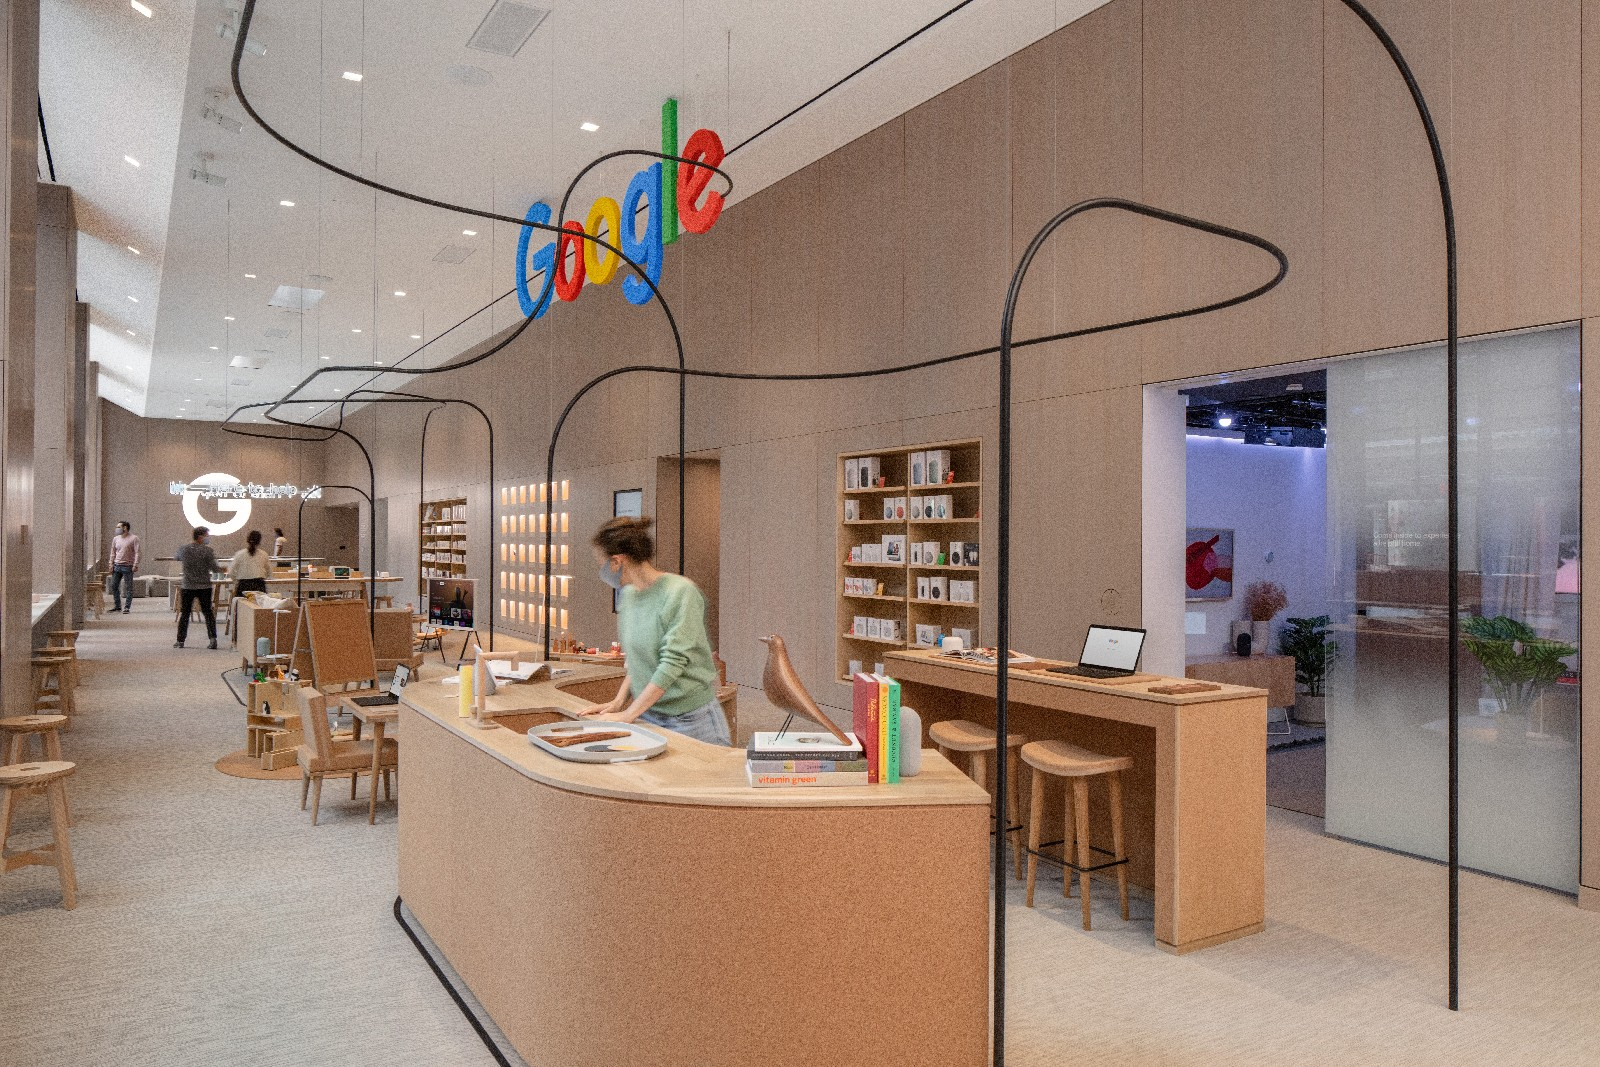 <p>Google Store Chelsea. Interior, featuring several curving light wood desks and stools.</p>